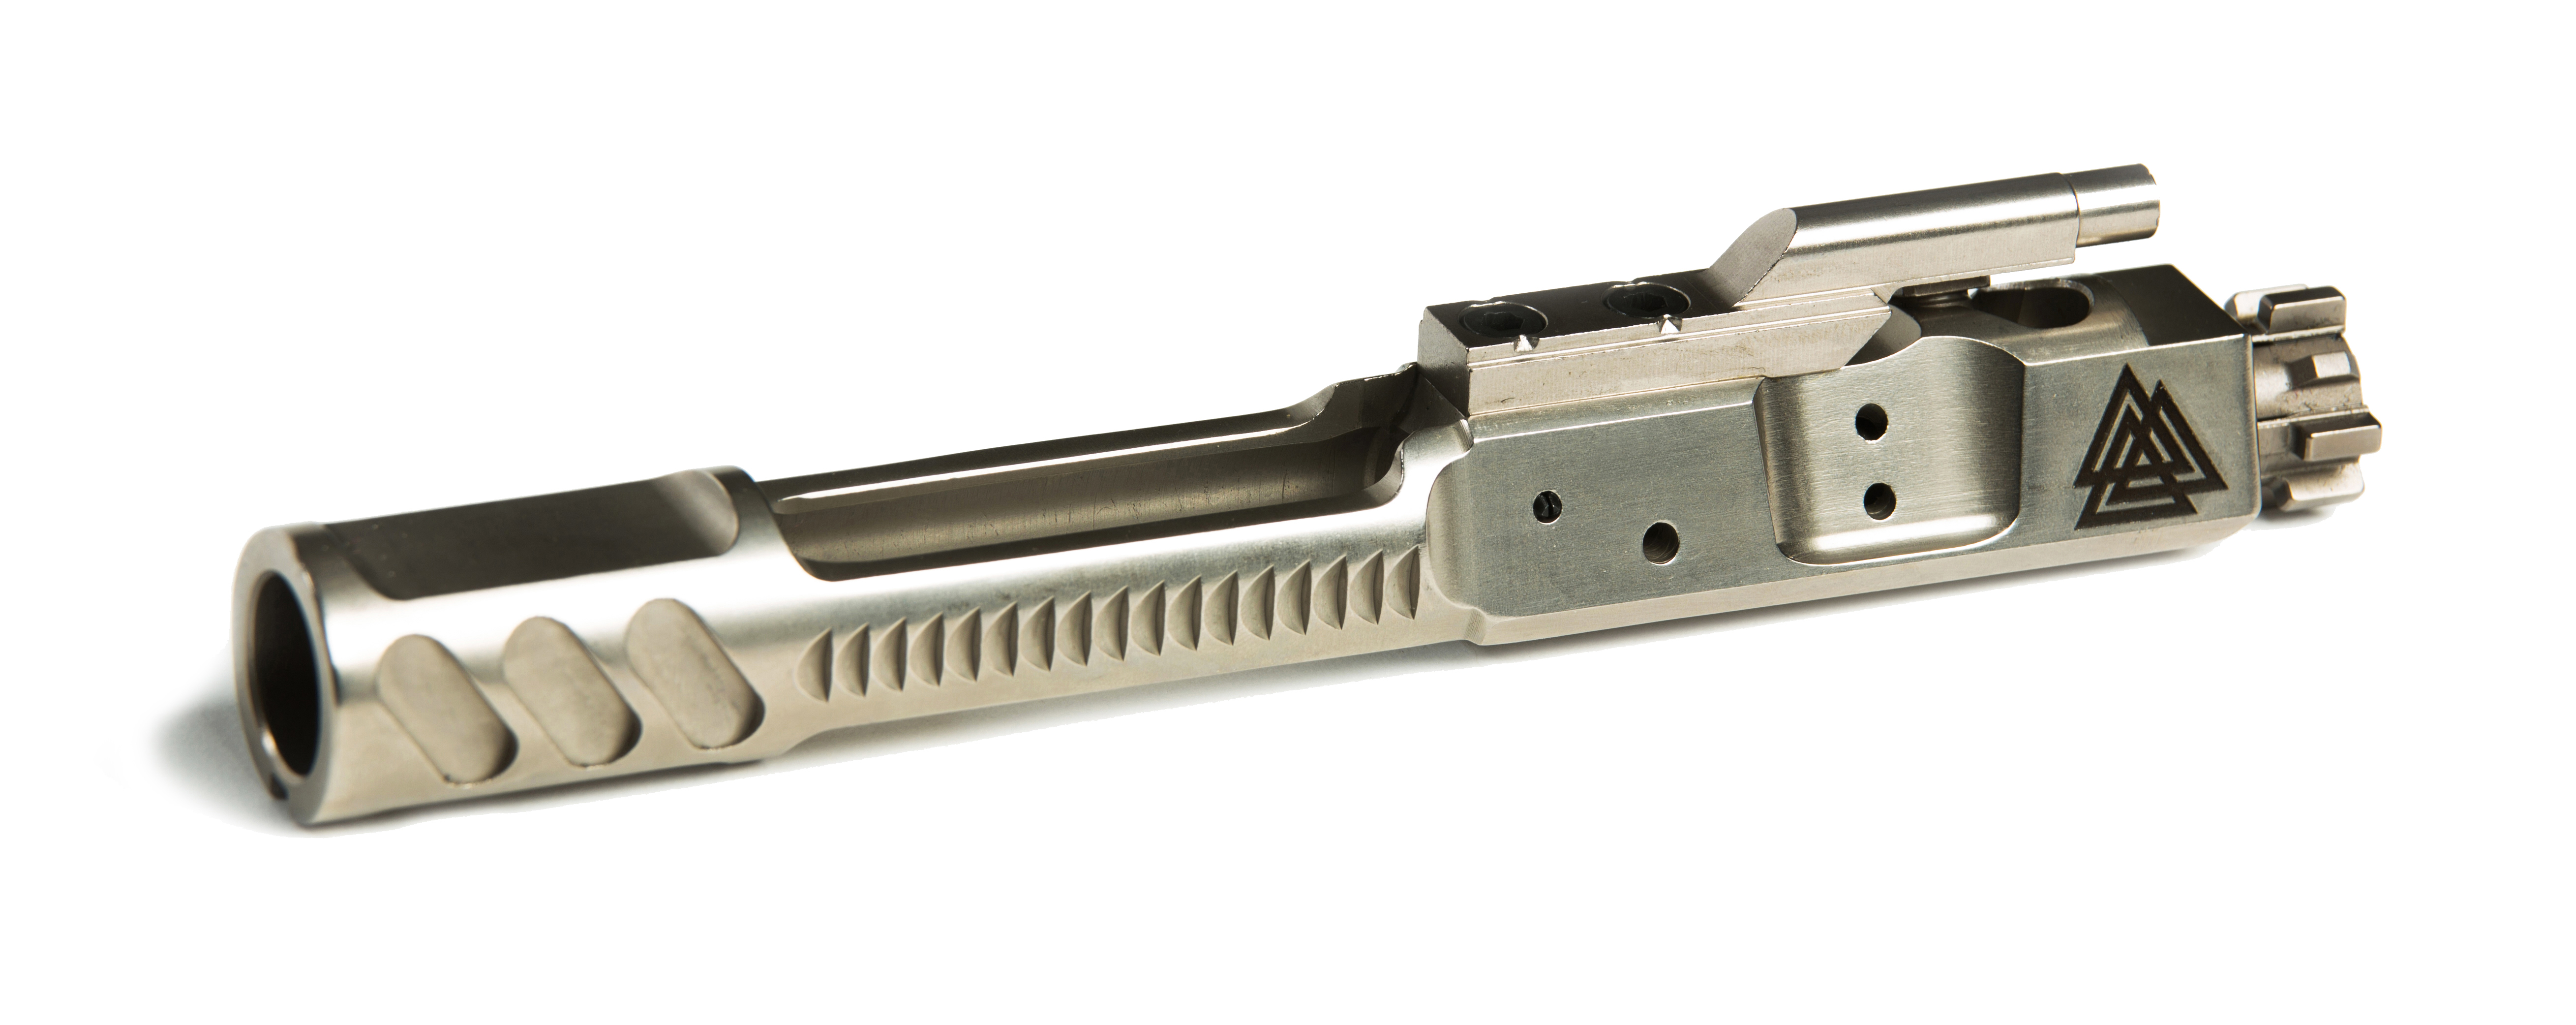 Iron City Rifle Works EVO S1 Drop-in Bolt Carrier Group